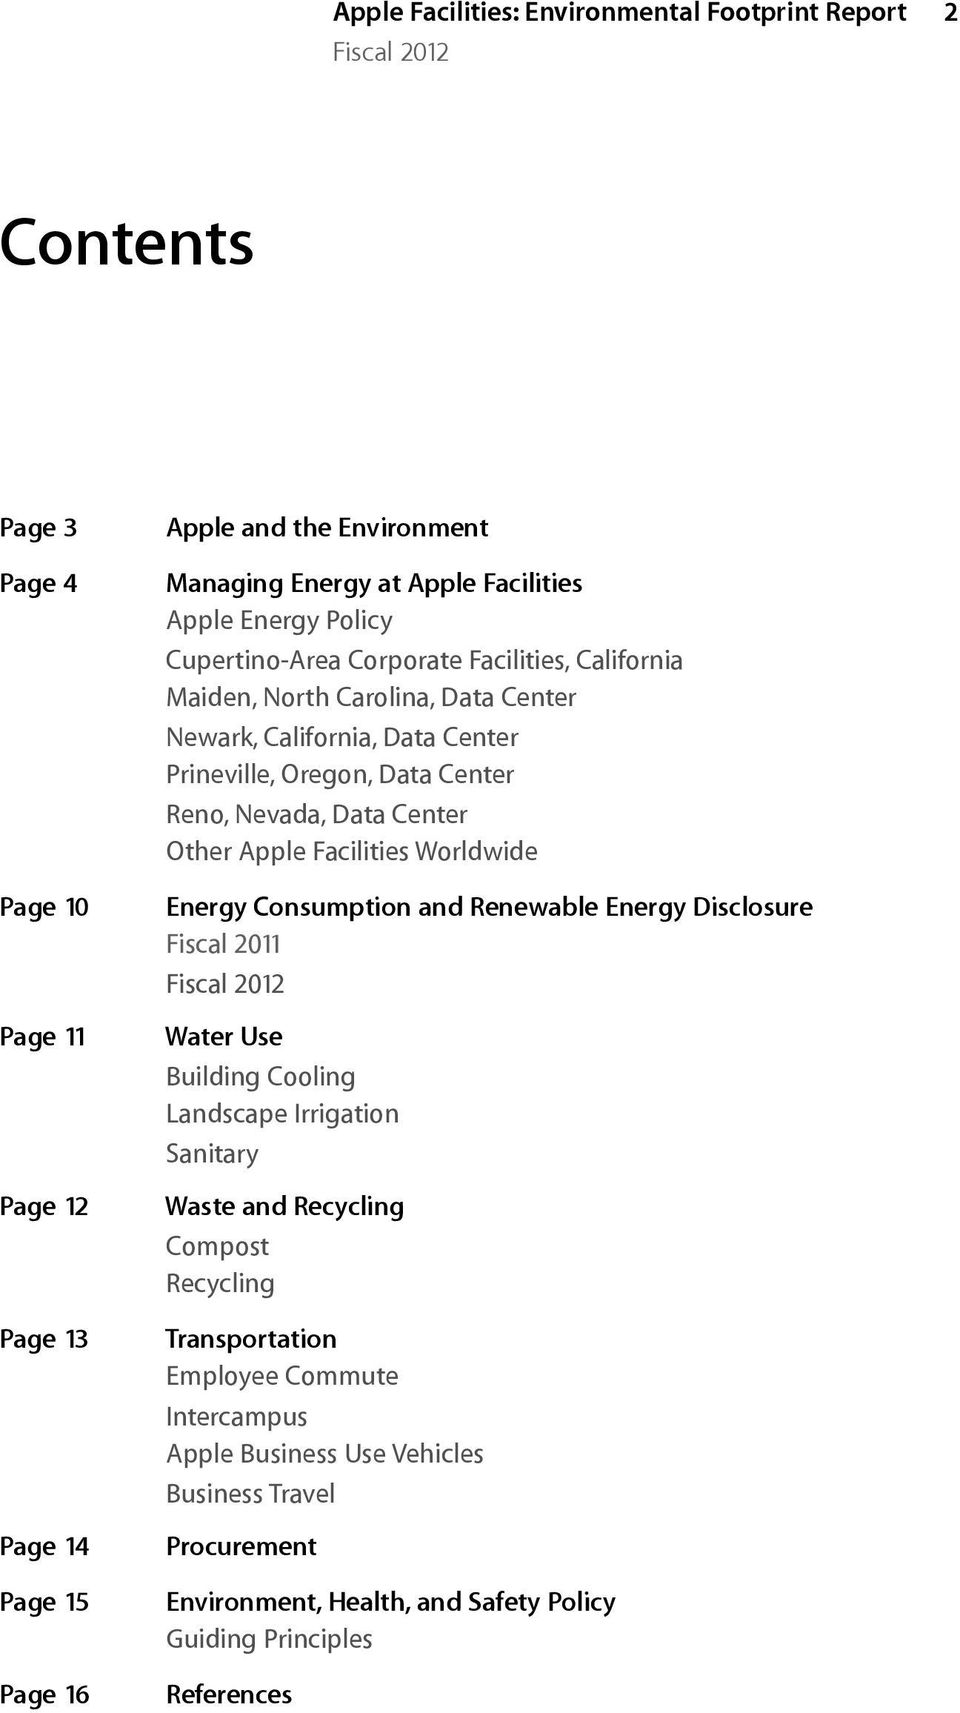 Nevada, Data Center Other Apple Facilities Worldwide Energy Consumption and Renewable Energy Disclosure Fiscal 2011 Water Use Building Cooling Landscape Irrigation Sanitary Waste and